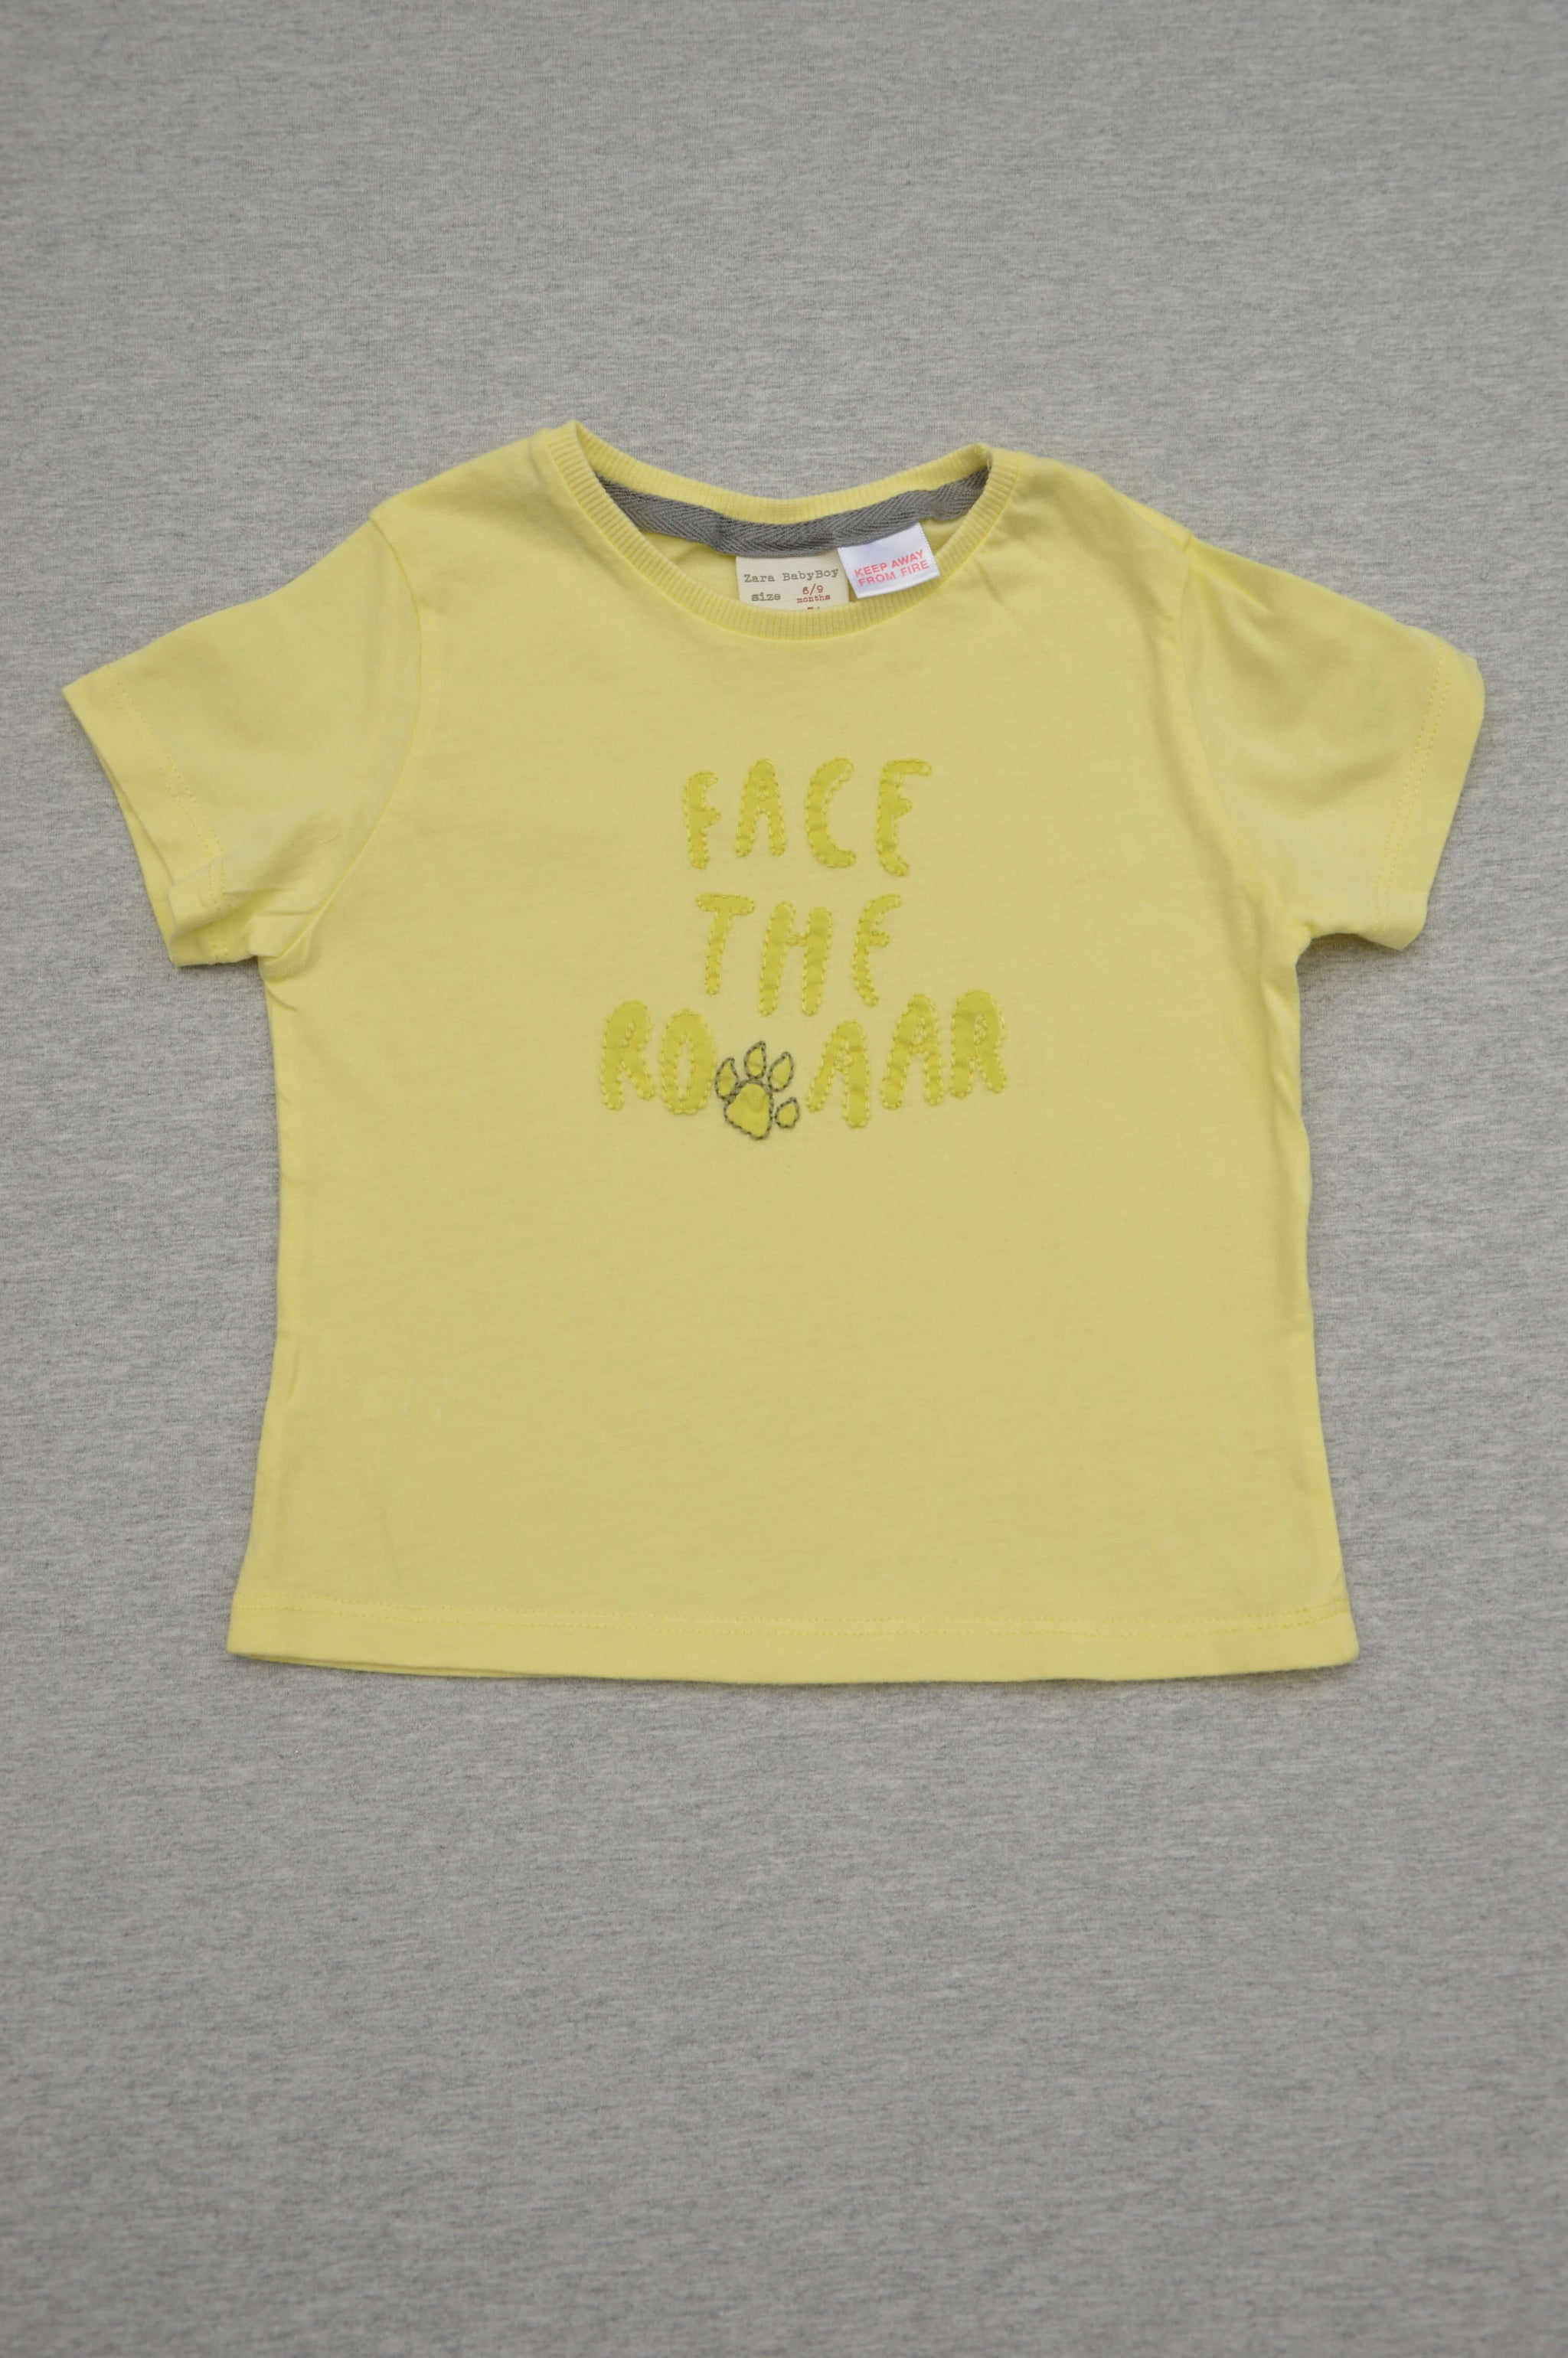 4bd527ee8e05f Zara - nearly new - yellow embroidered t-shirt